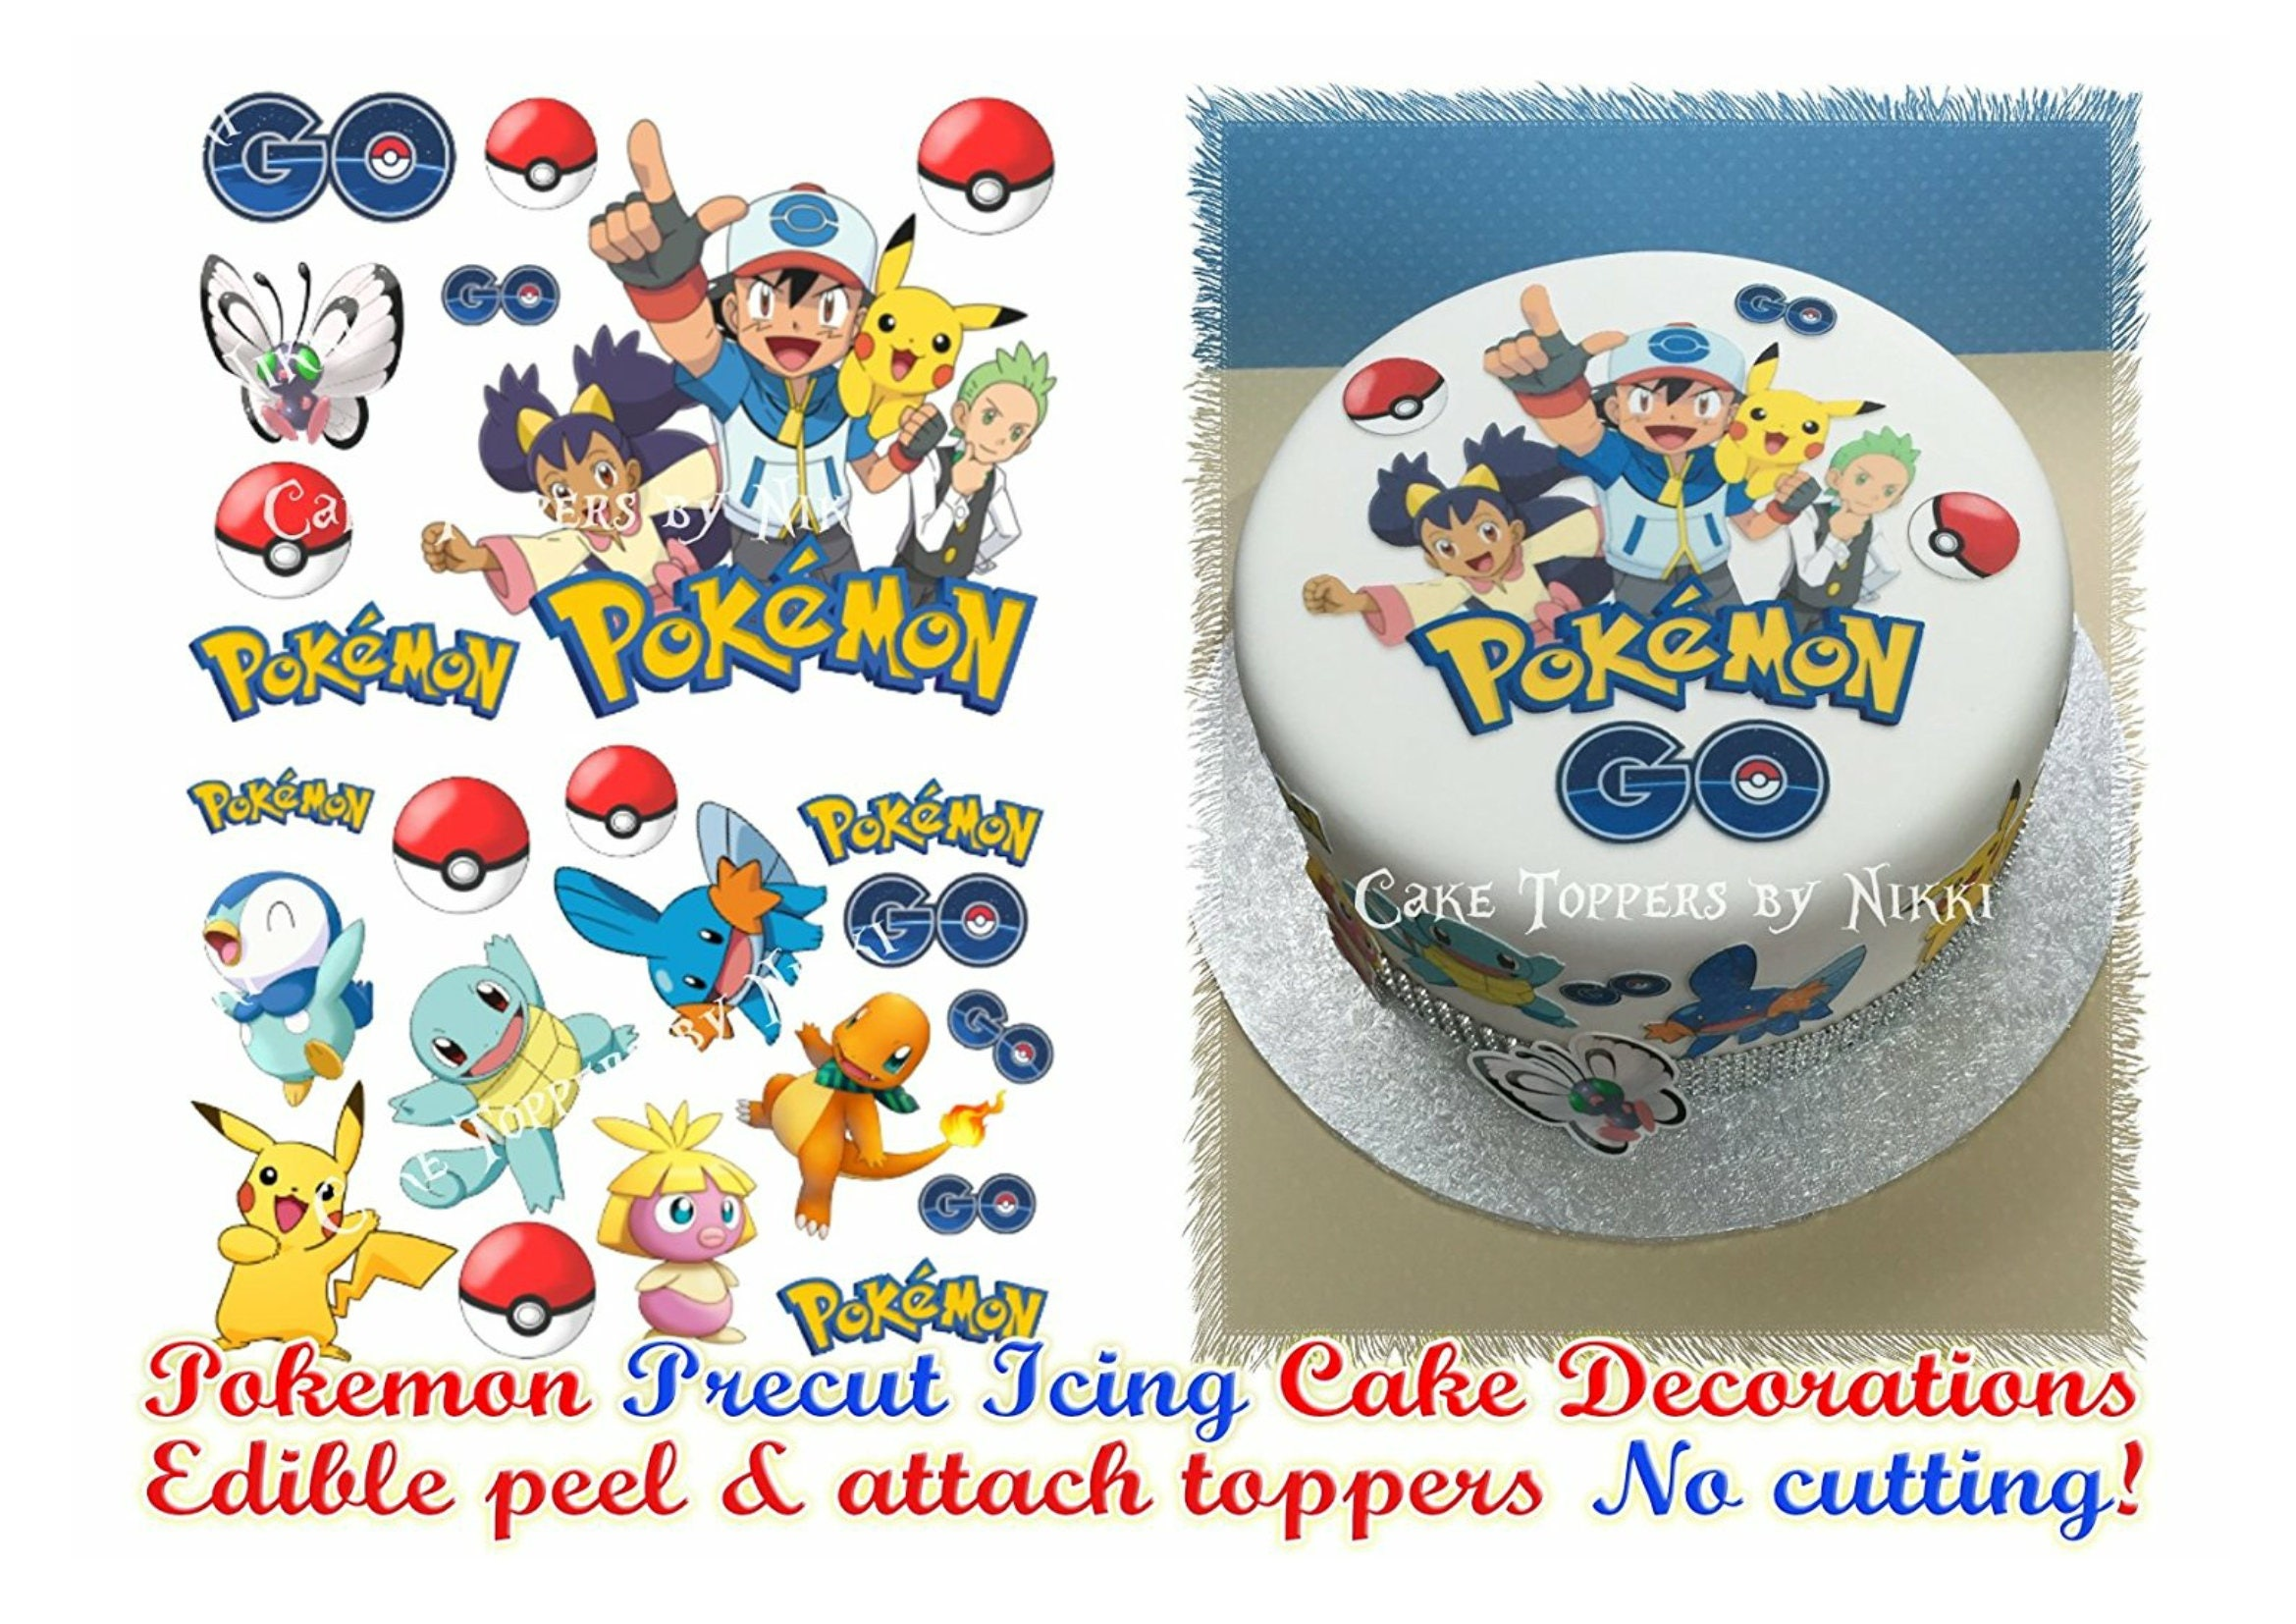 Edible Cake Images Pokemon : Edible Icing POKEMON GO Cake Decorations PRECUT No Cutting